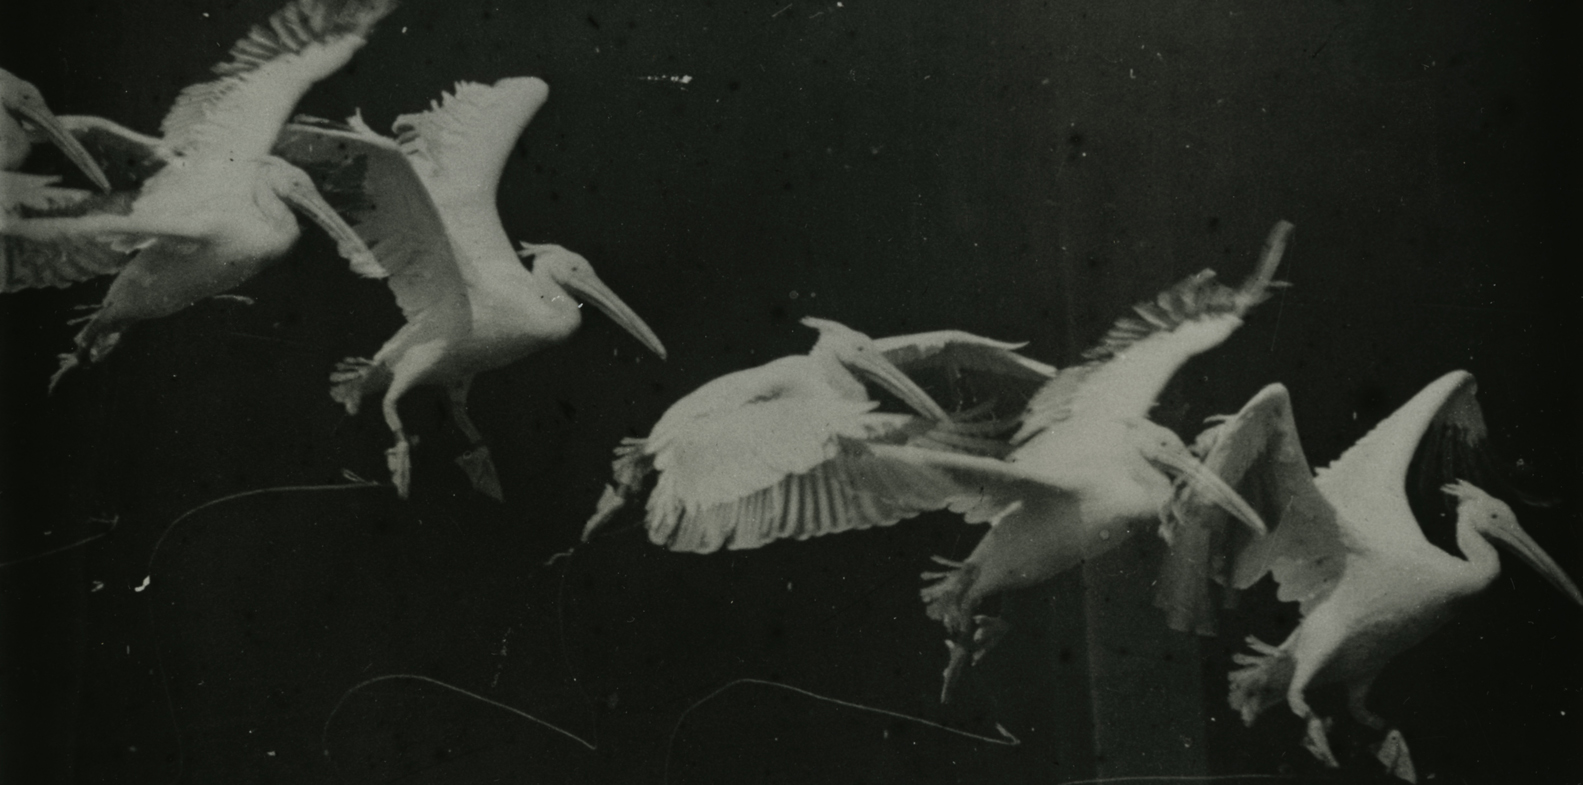 Étienne-Jules Marey. Bird Flight, Pelican, 1886. Source: Wikimedia Commons, image in public domain (PD-1923).